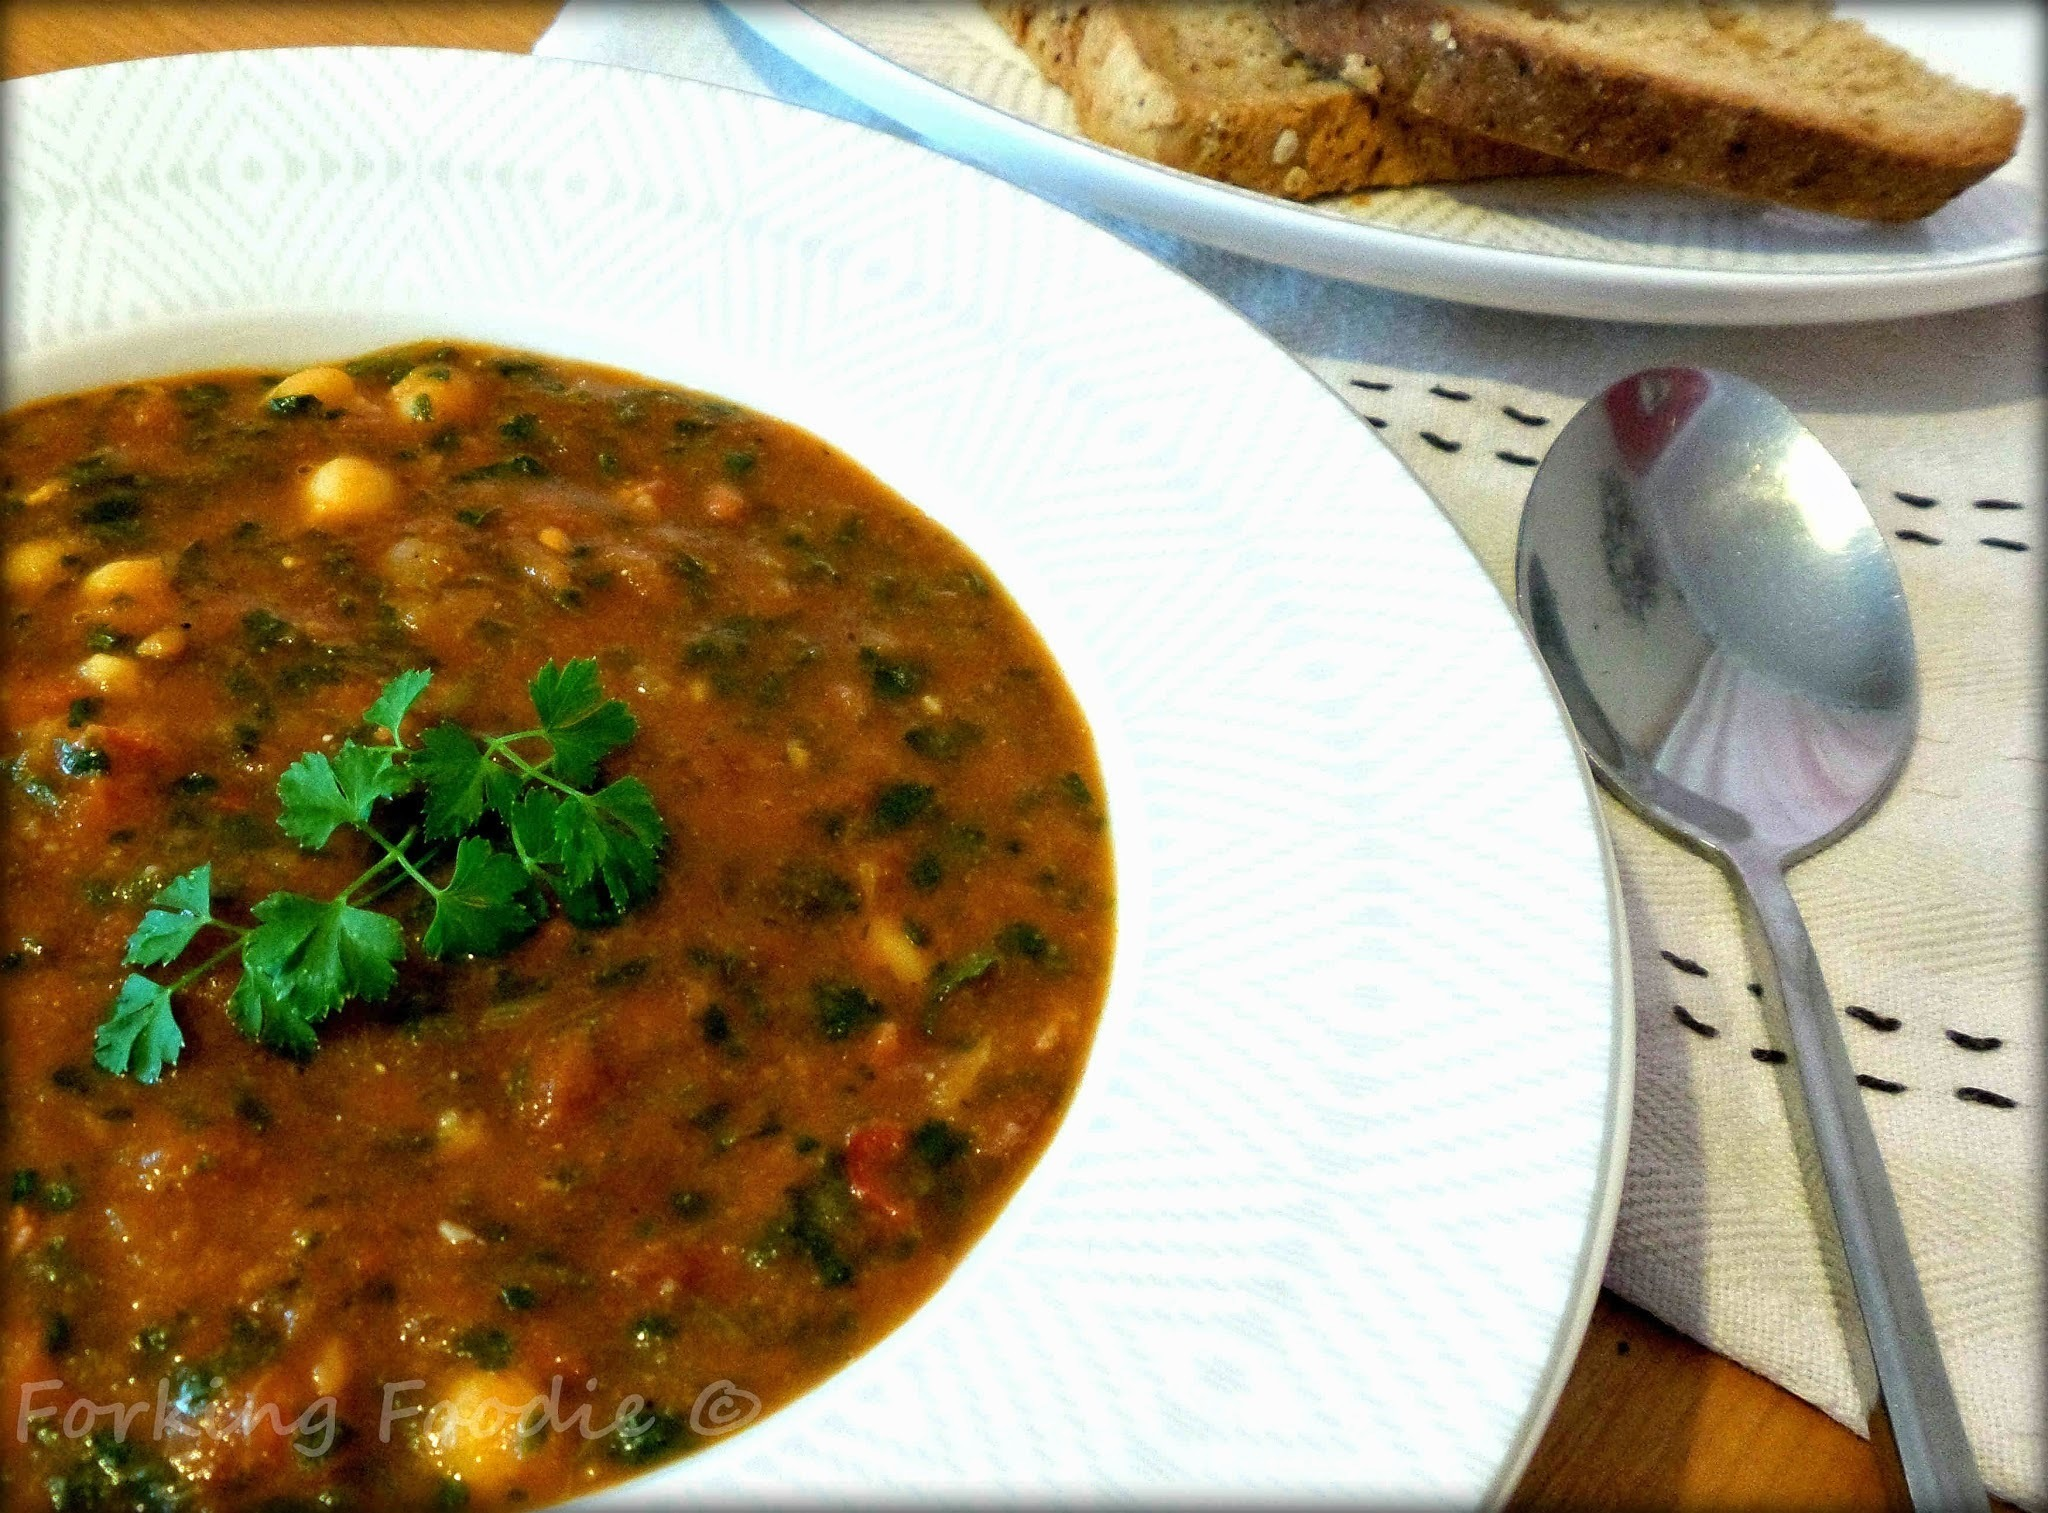 Spicy Chorizo, Chickpea and Spinach Soup (includes Thermomix method)